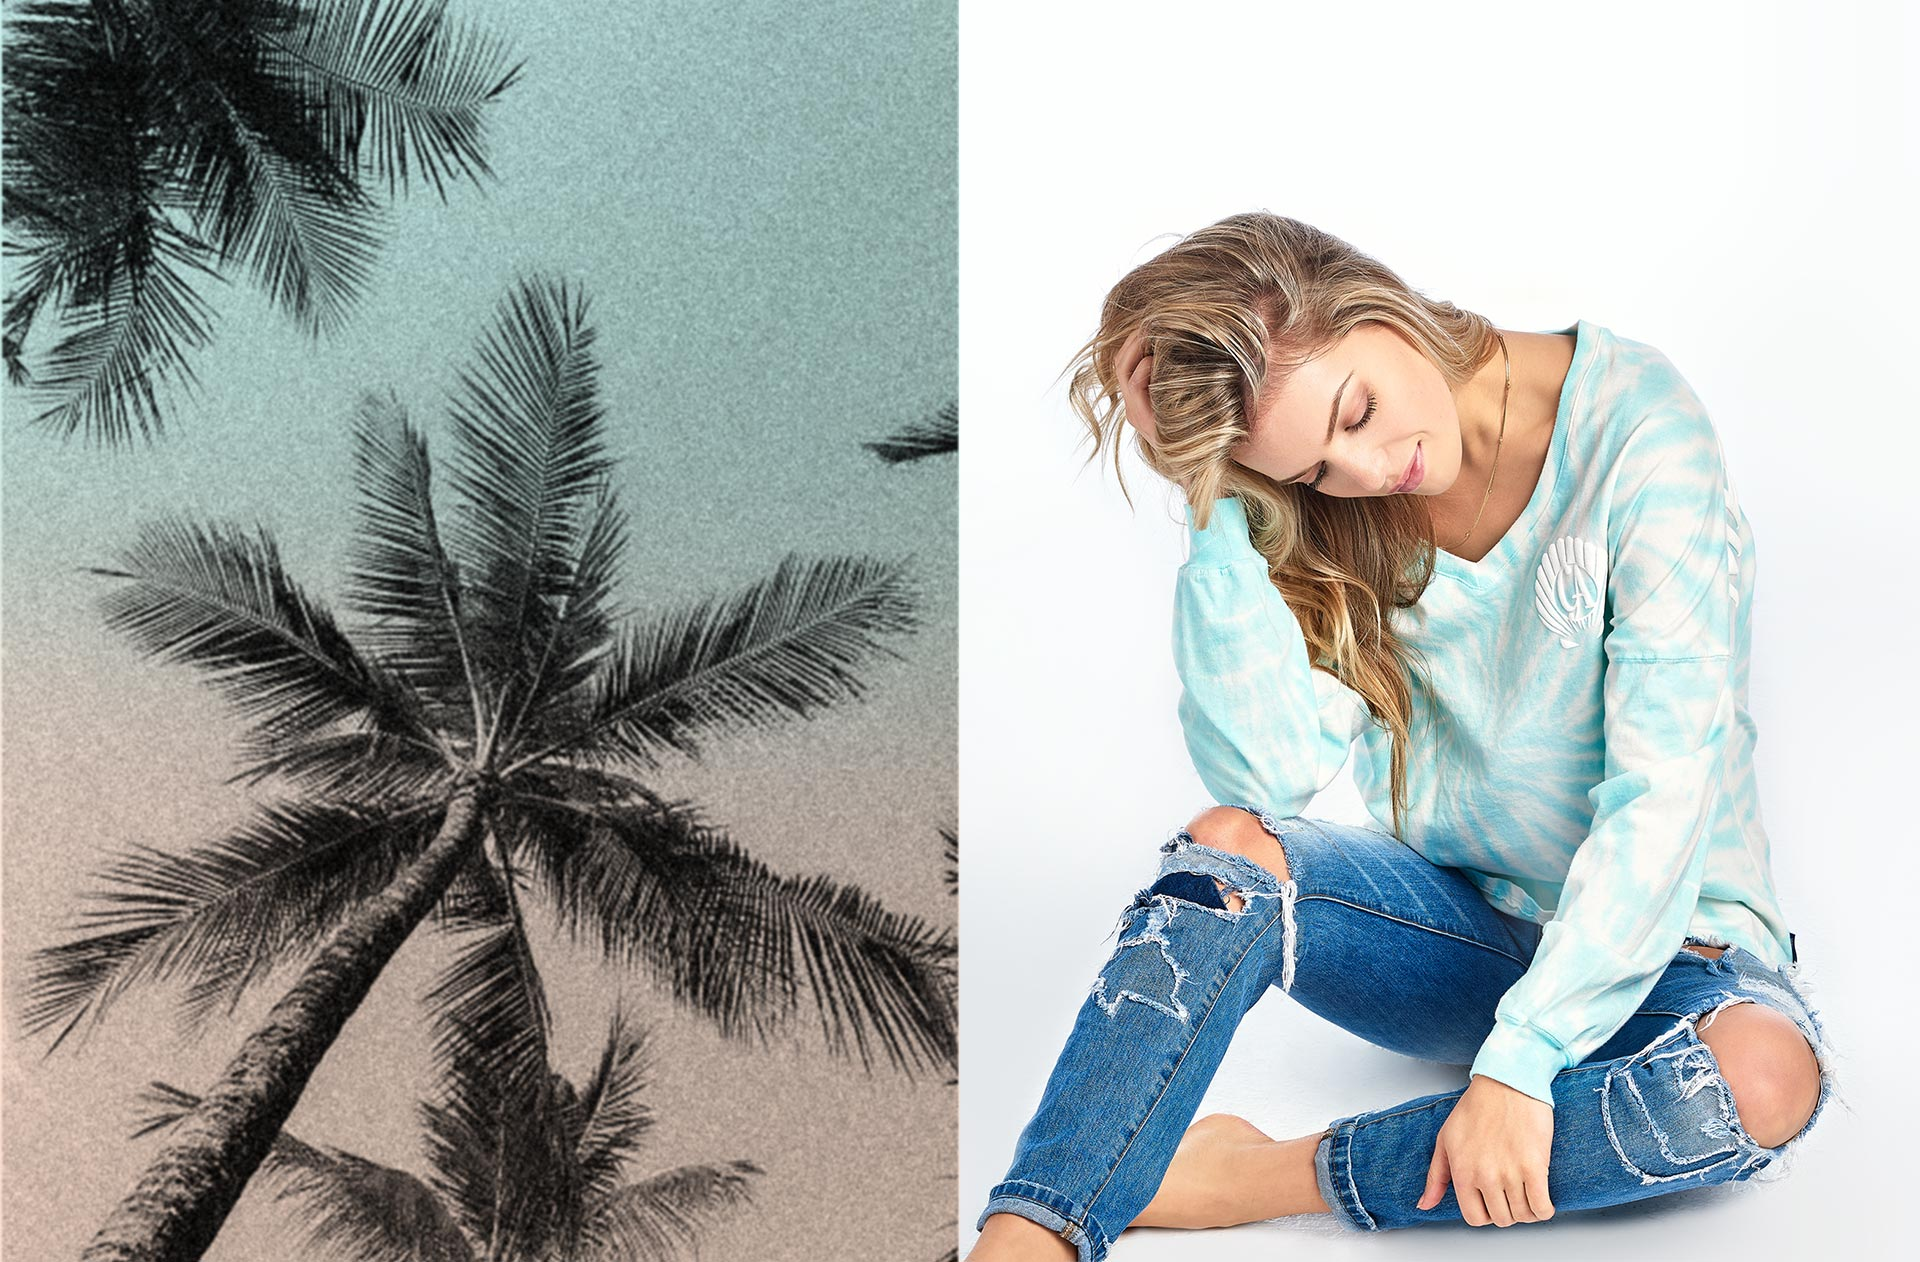 Spirit Palms photo from our 2018 lookbook featuring our long sleeve v-neck spiral tie dye Spirit Jersey®